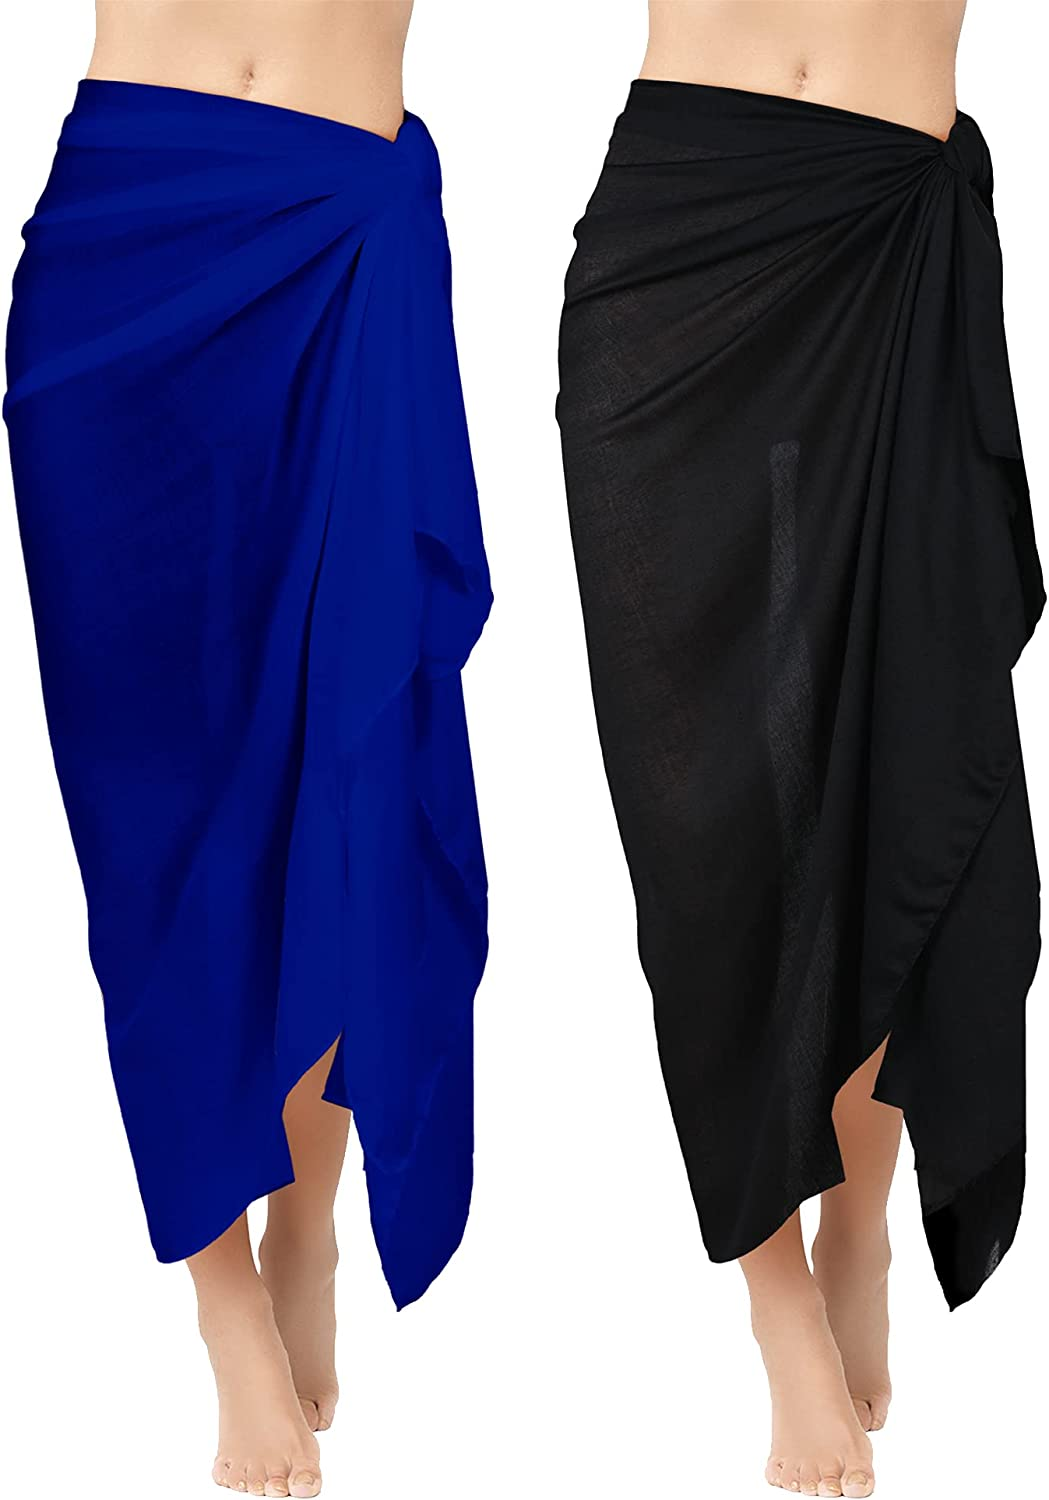 Geyoga 2 Pieces Beach Towels Long Sarong Swimsuit Wrap Shawl Rayon Cover Long Skirt for Ladies